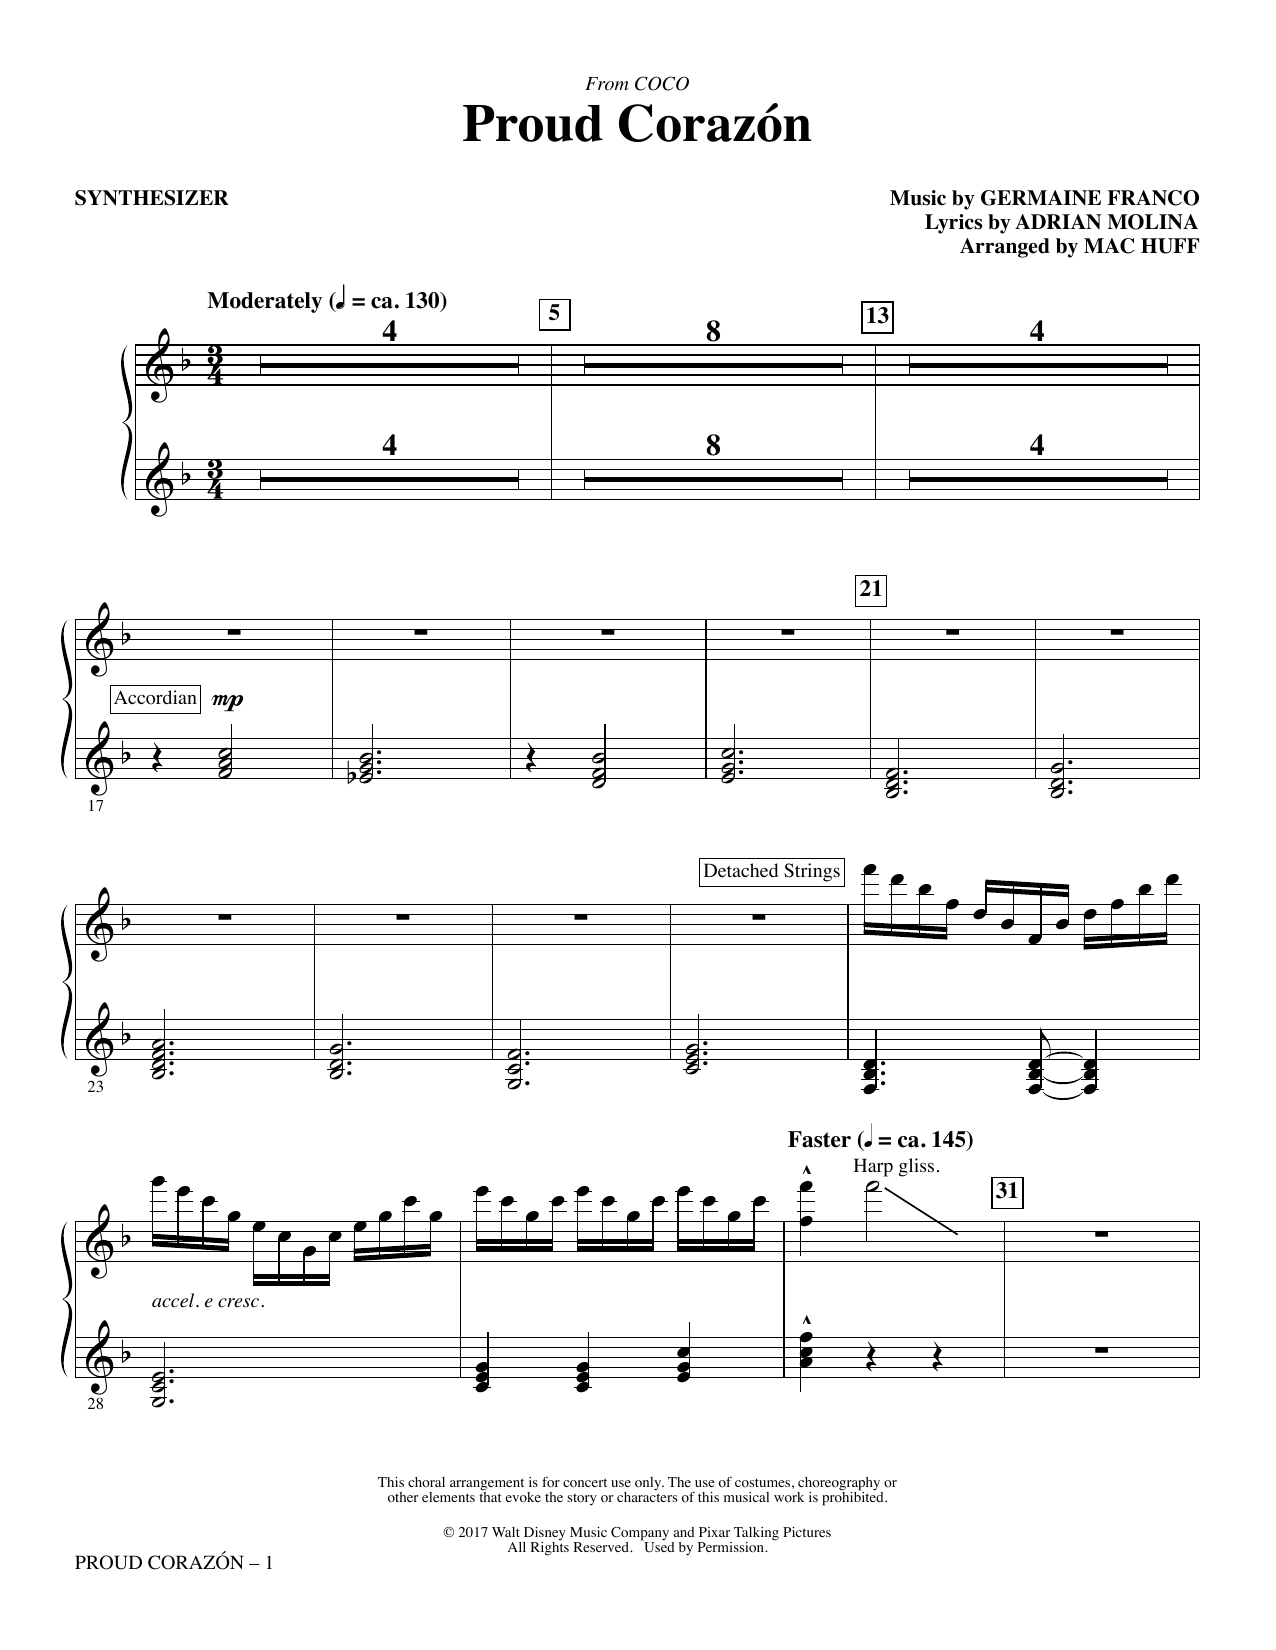 Germaine Franco & Adrian Molina Proud Corazon (from Coco) (arr. Mac Huff) - Synthesizer sheet music notes and chords. Download Printable PDF.